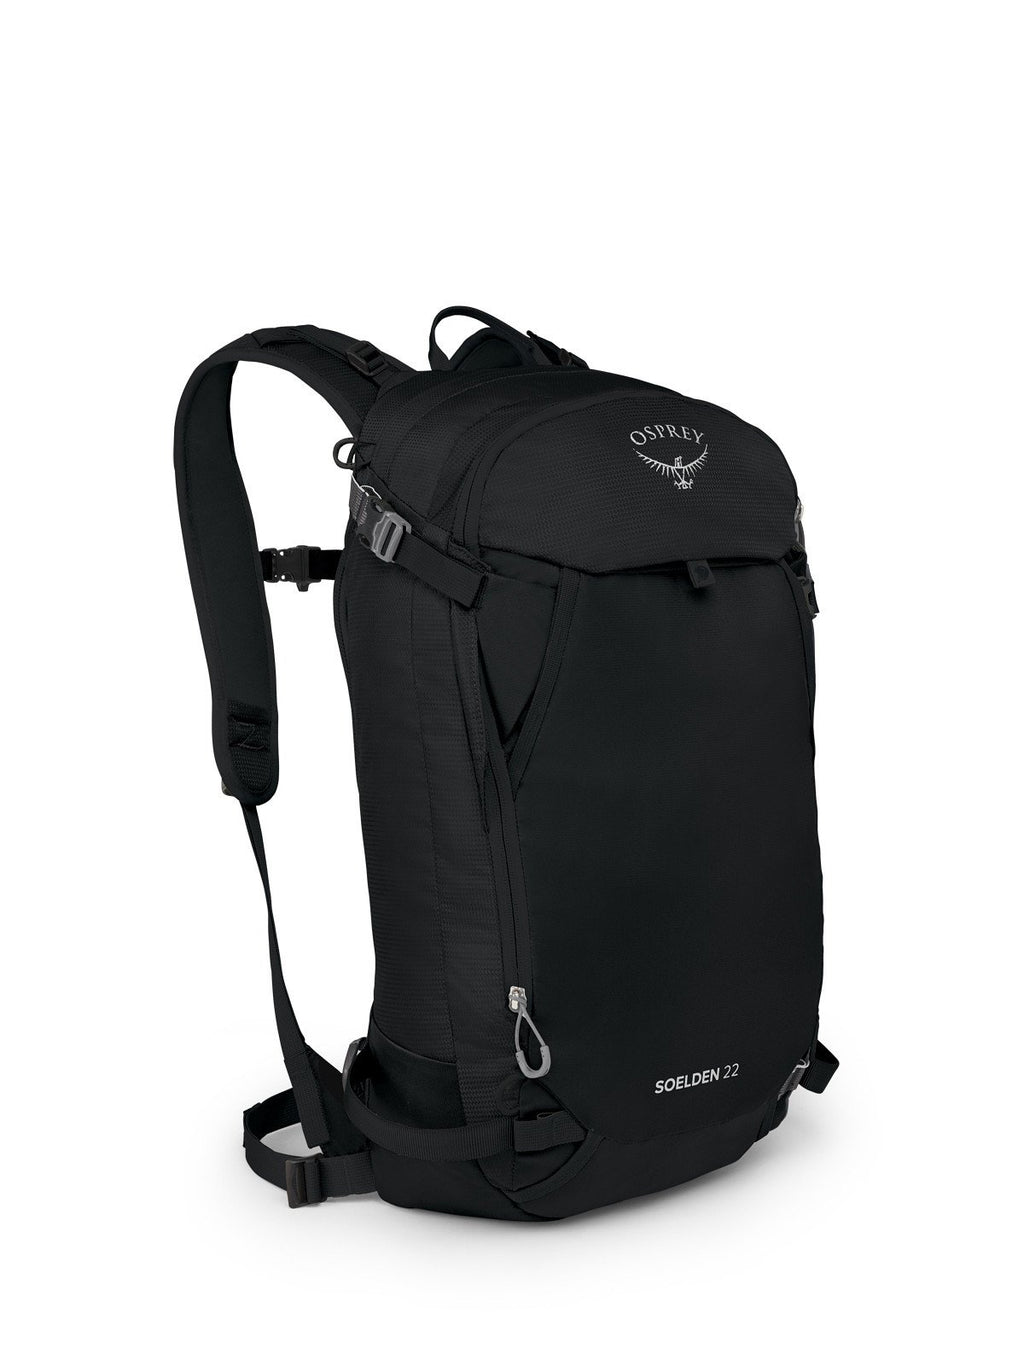 Osprey Soelden 22 Lightweight Touring Backpack